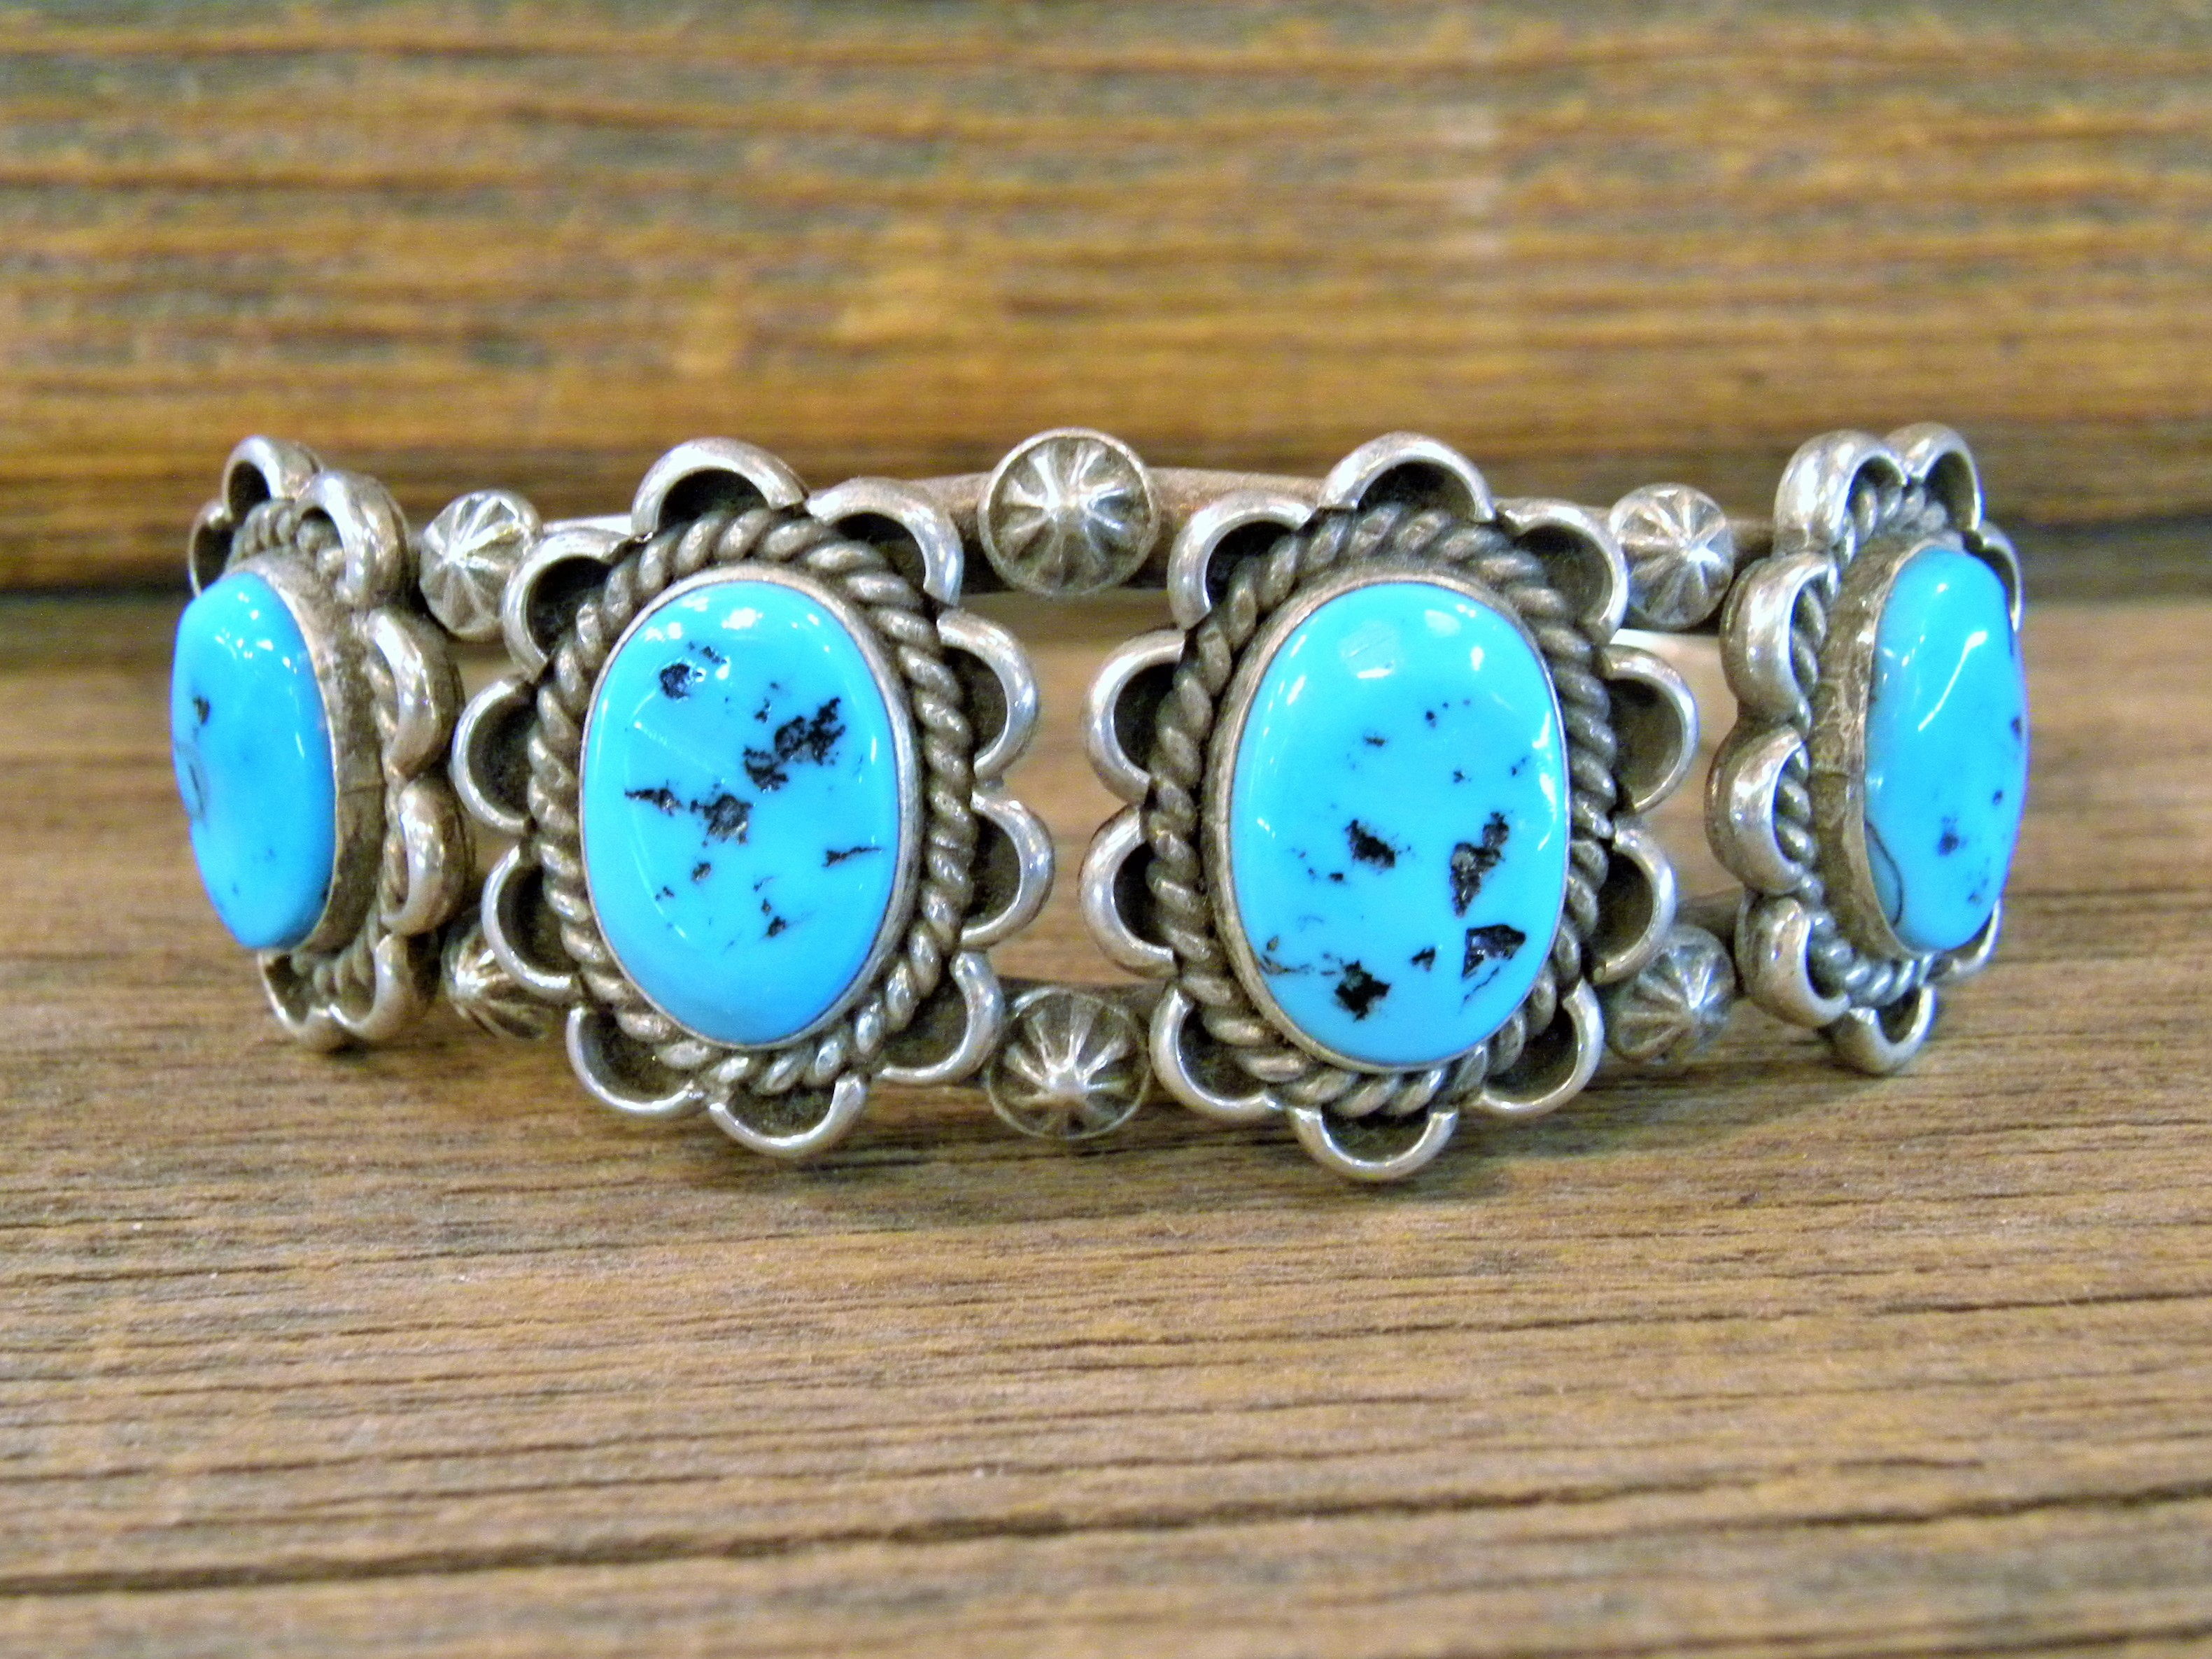 product by cuff native bracelet turquoise royston navajo jewelry hoskie guy